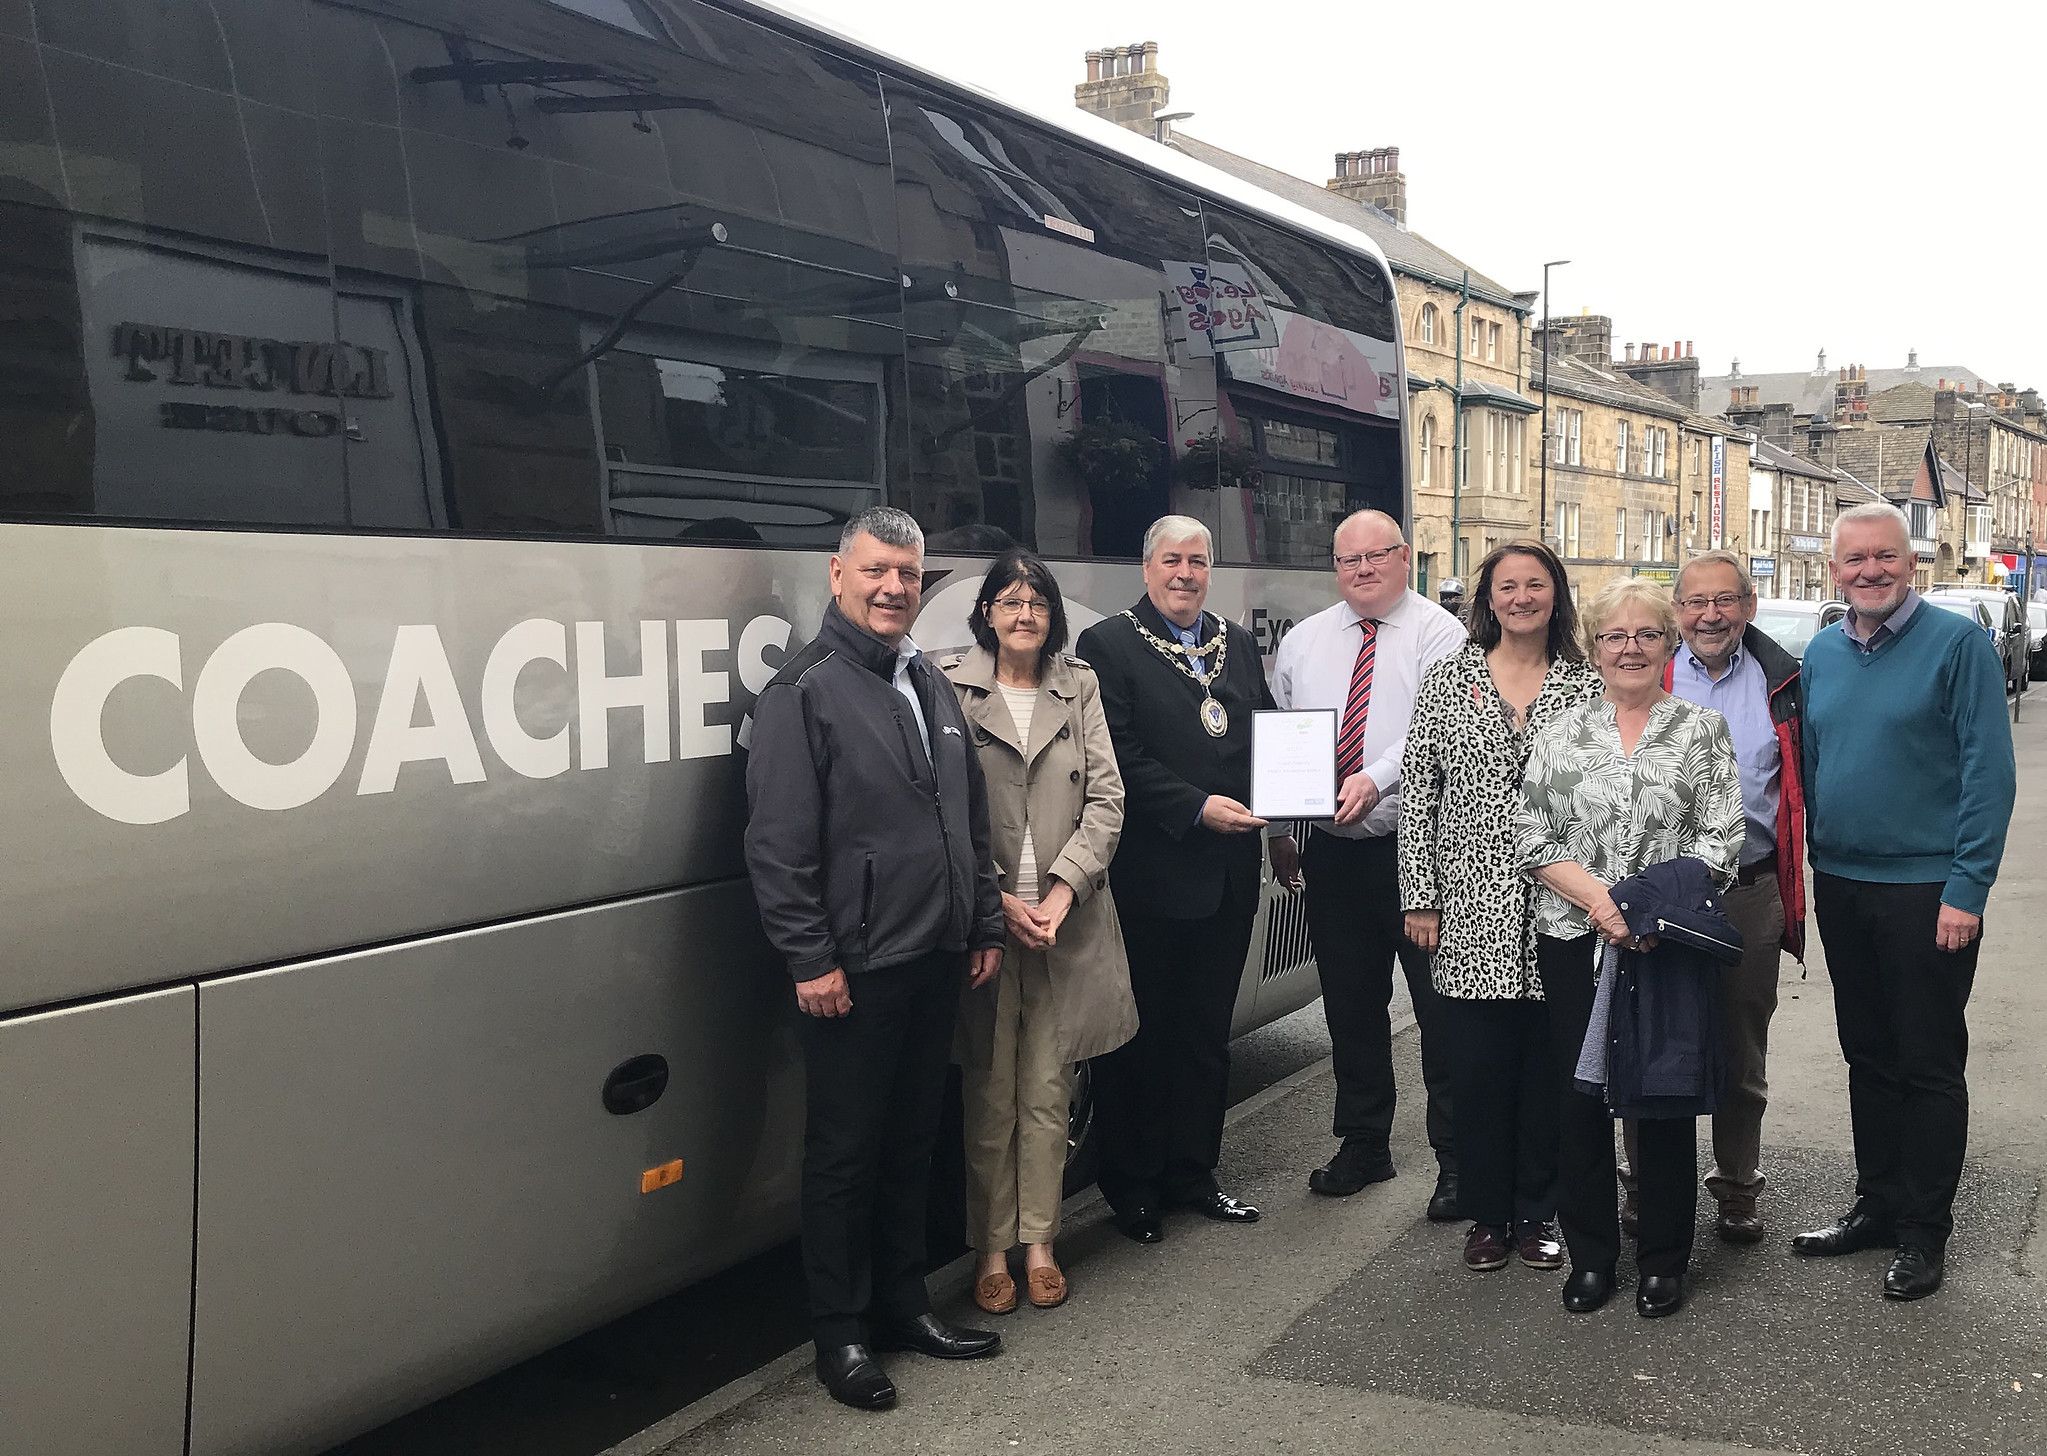 Coach Tours to Otley